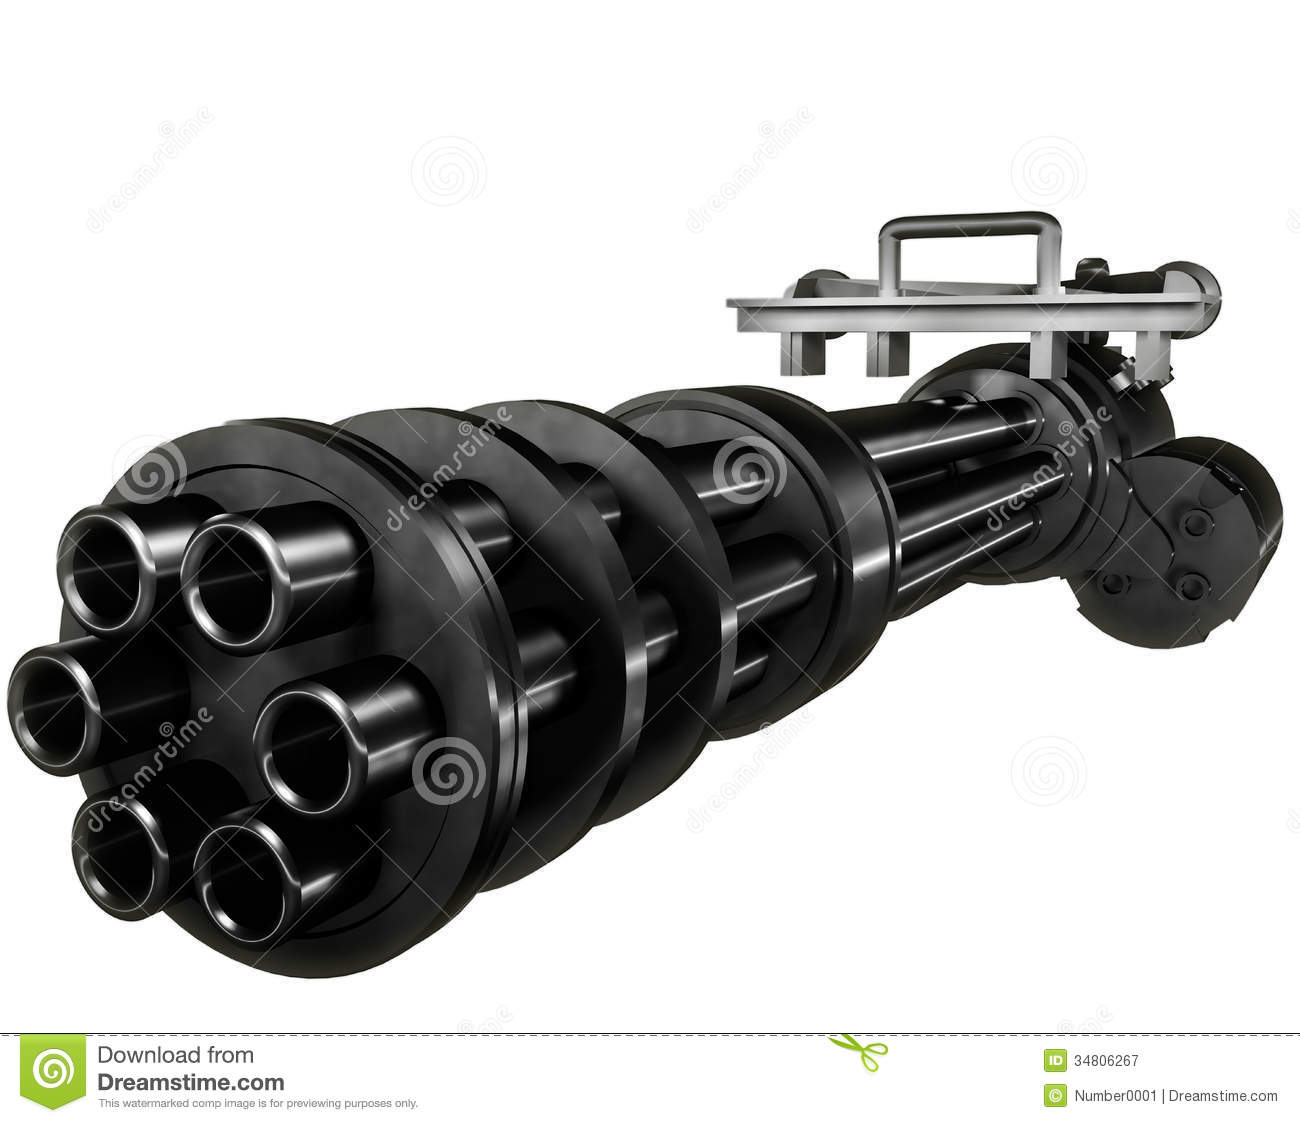 Gatling Royalty Free Stock Photography - Image: 34806267